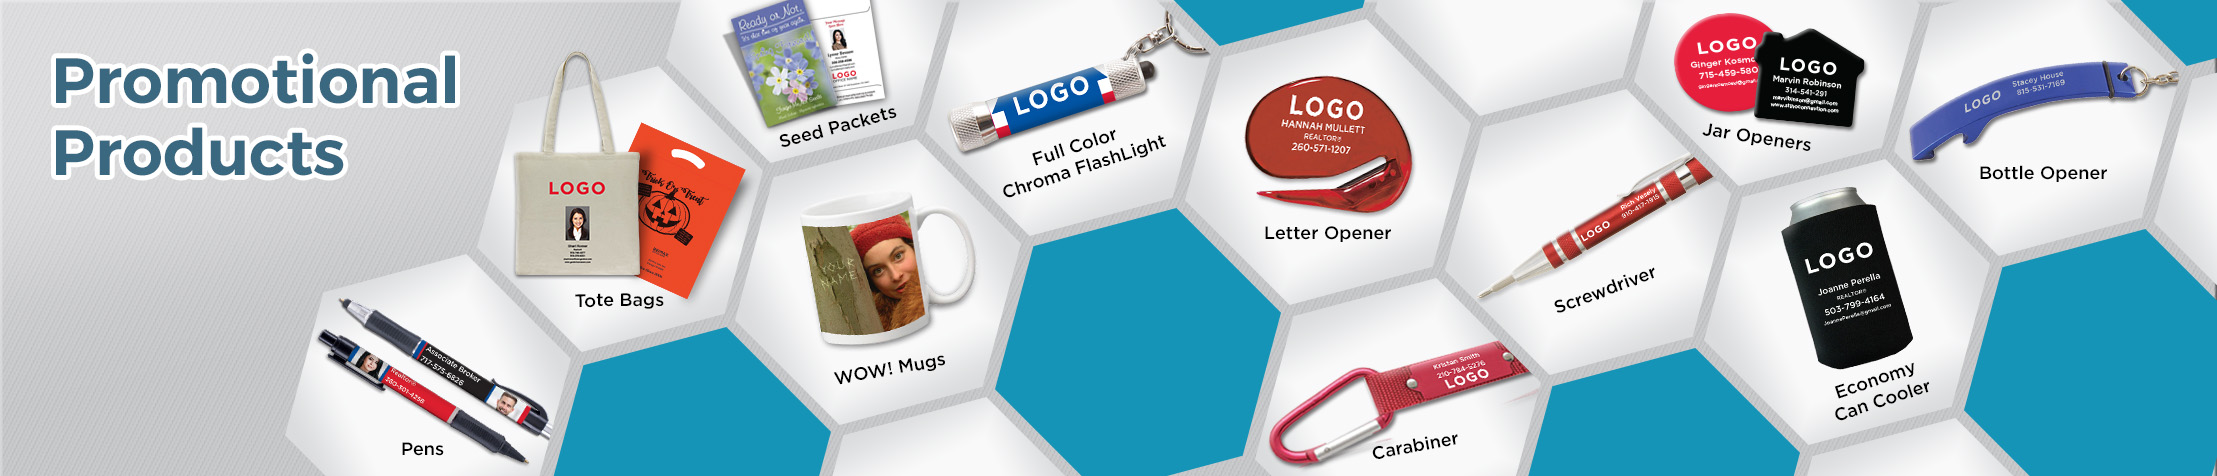 RE/MAX Real Estate Promotional Products - RE/MAX  personalized promotional pens, key chains, tote bags, flashlights, mugs | BestPrintBuy.com